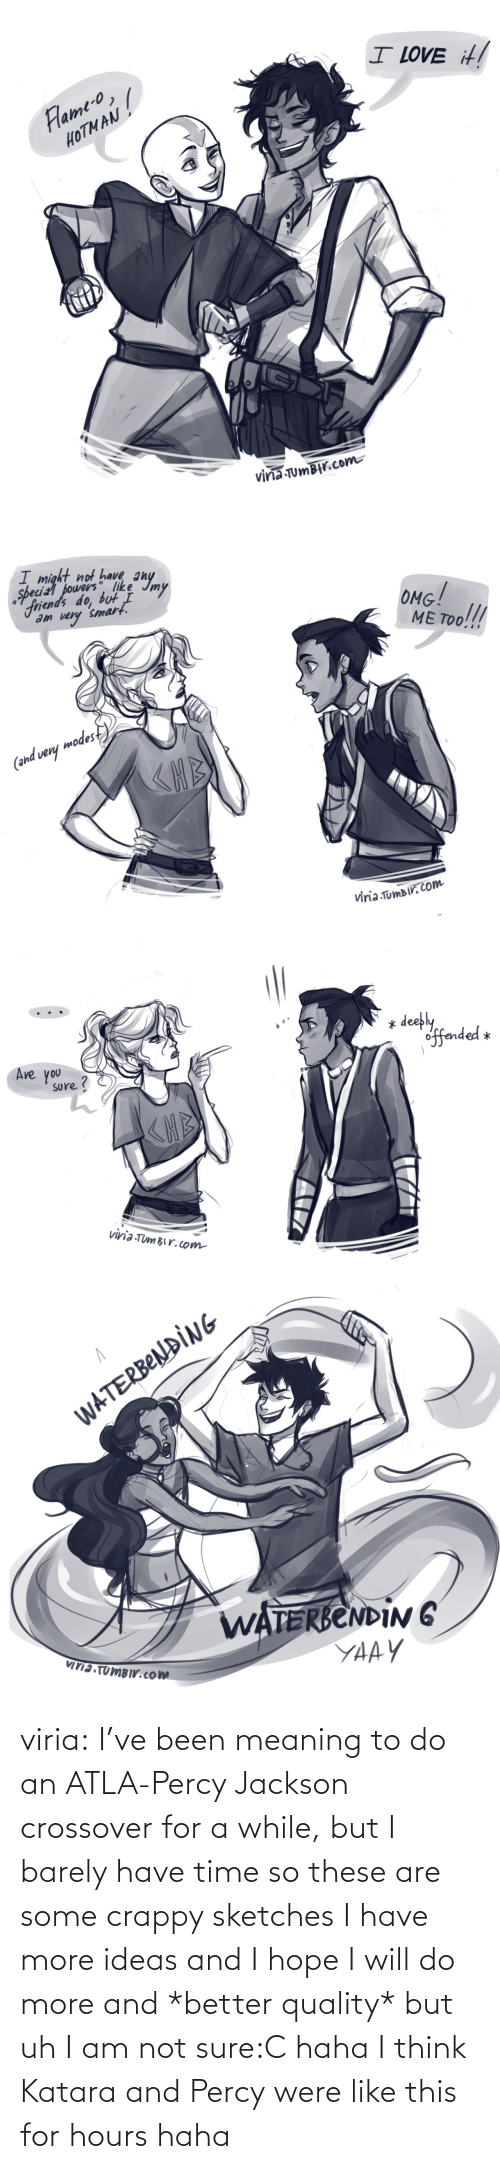 better: viria:  I've been meaning to do an ATLA-Percy Jackson crossover for a while, but I barely have time so these are some crappy sketches I have more ideas and I hope I will do more and *better quality* but uh I am not sure:C haha I think Katara and Percy were like this for hours haha